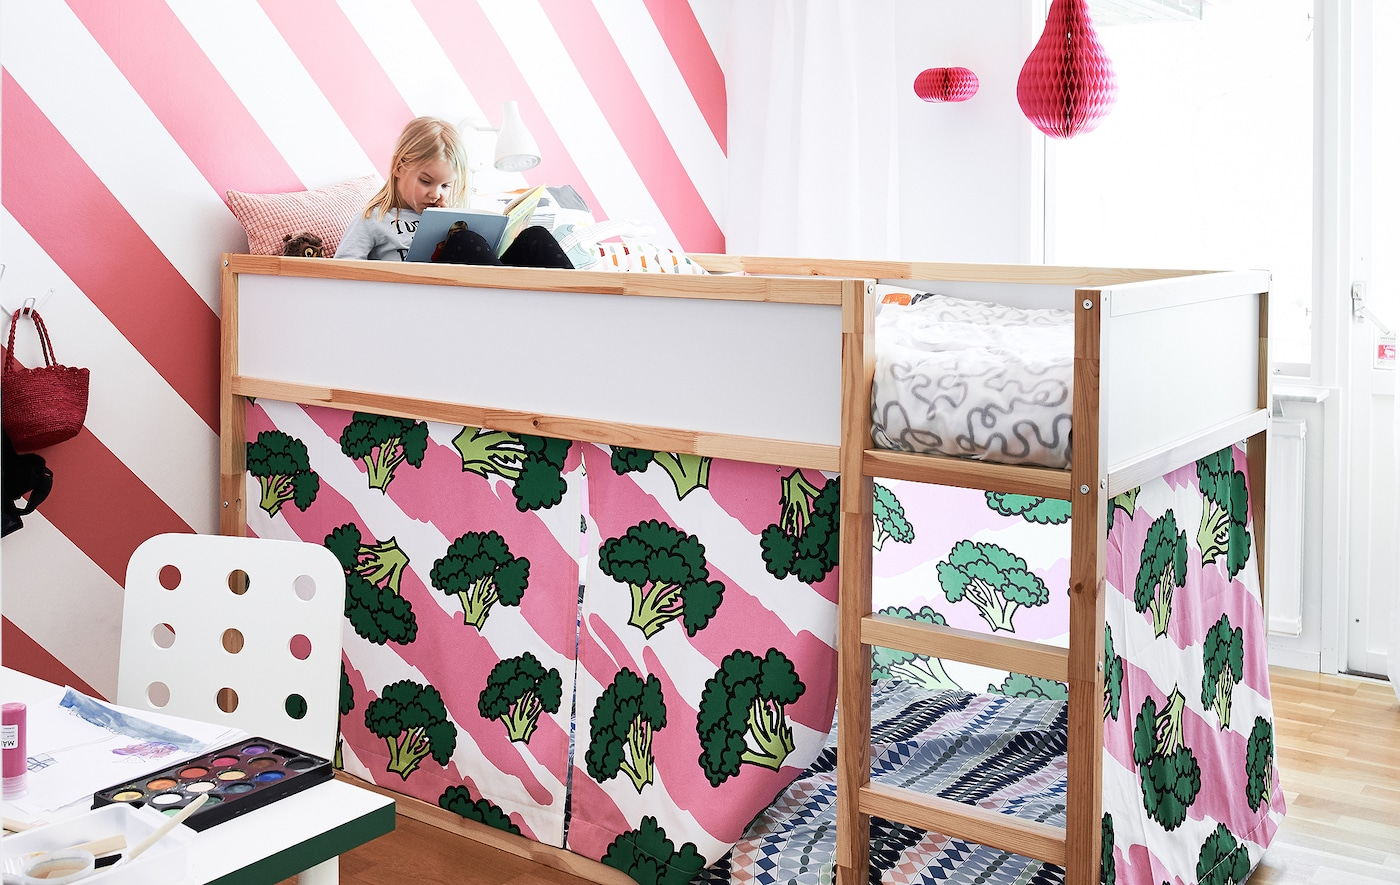 Henrik's daughter on her top bunk, reading a book against a white and bright pink striped wall in her redecorated bedroom.